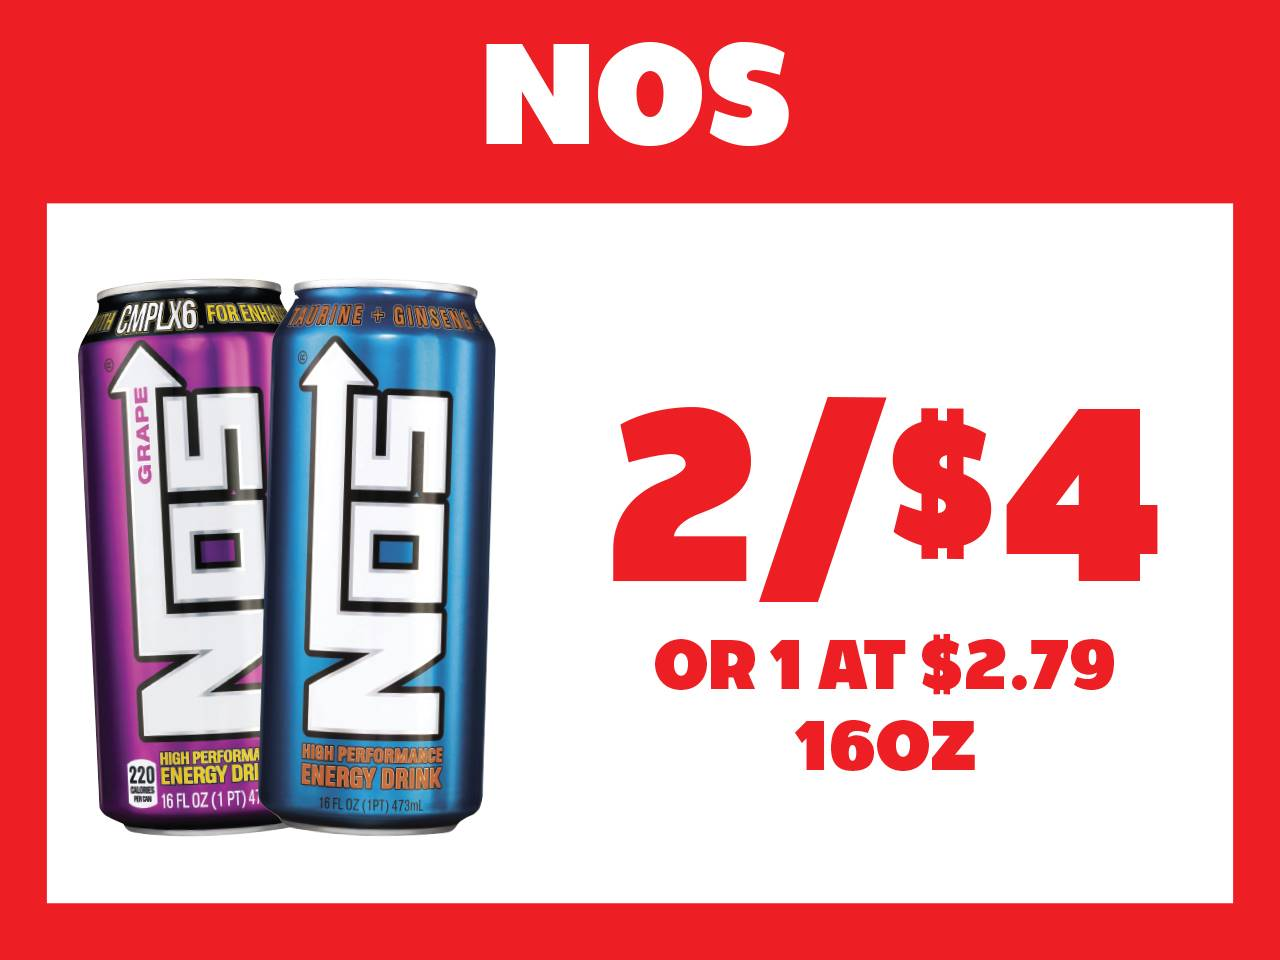 Nos 16oz 2 for $4 or 1 at $2.79